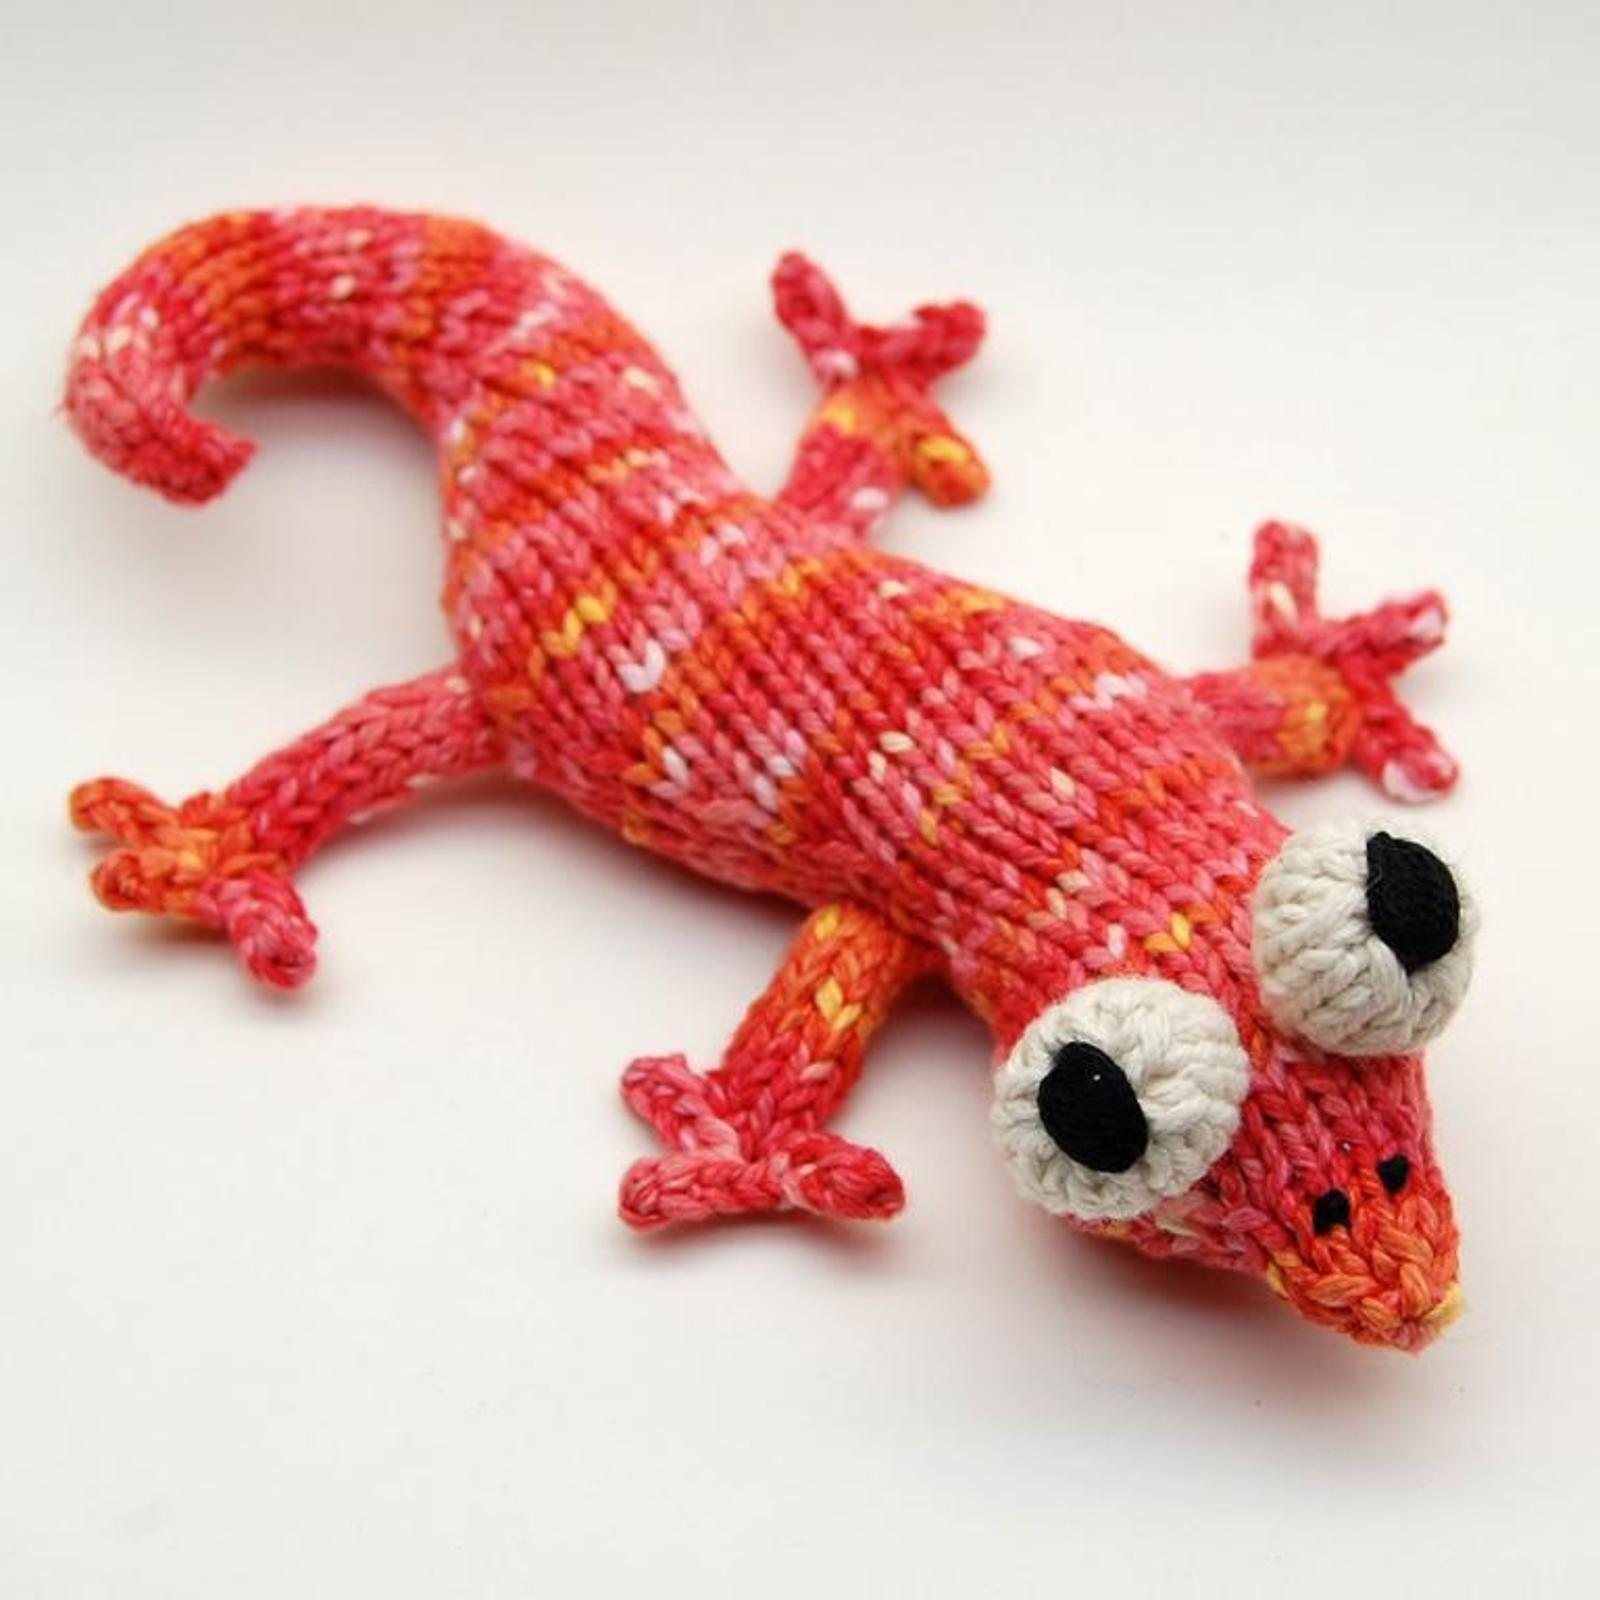 Eddie Lizzard Amigurumi Knitting Pattern